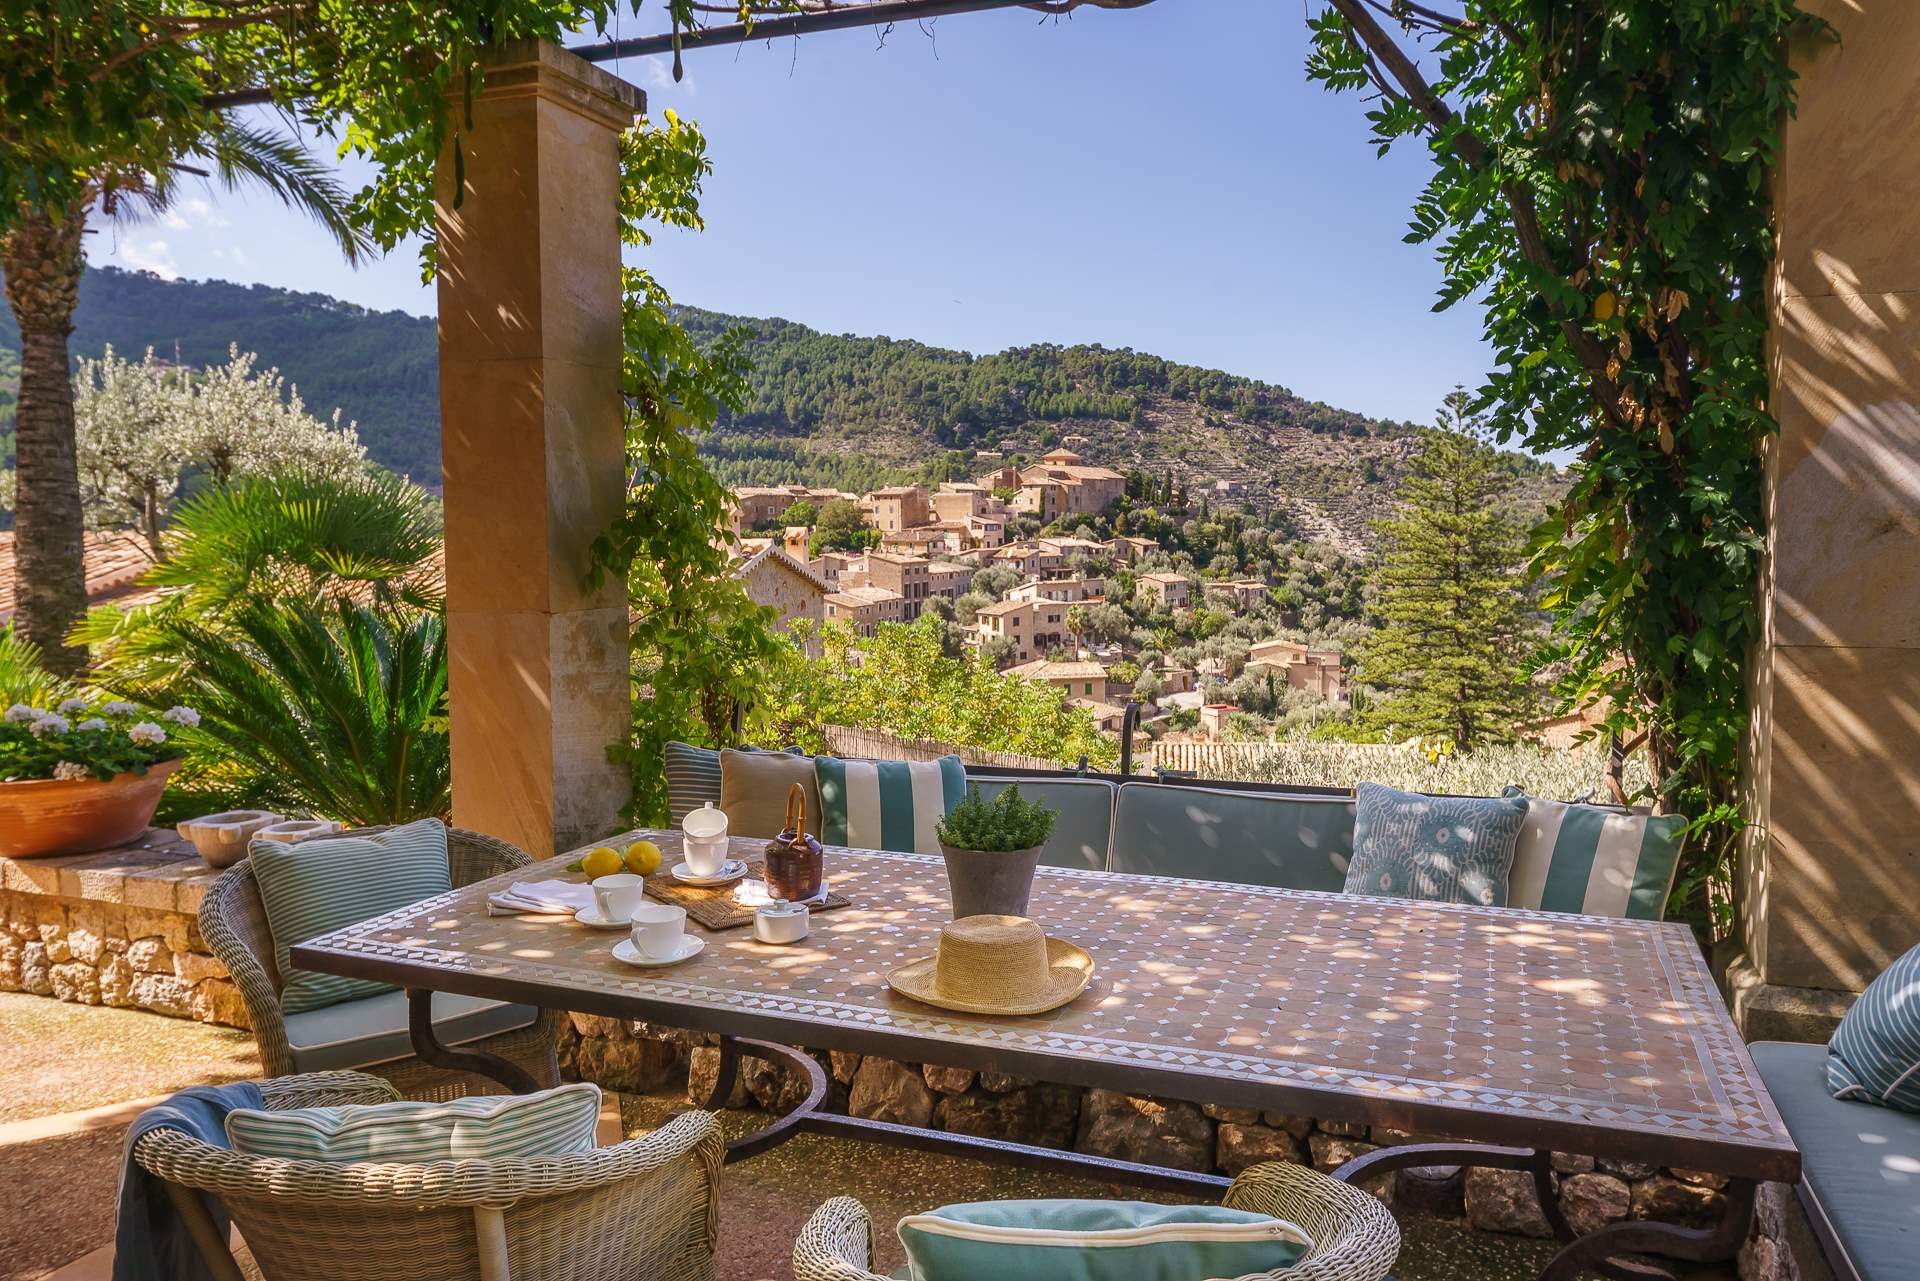 Sa Tanca, 3 Bedroom Rental, 3 bedroom villa in Soller & Deia, Majorca Photo #2